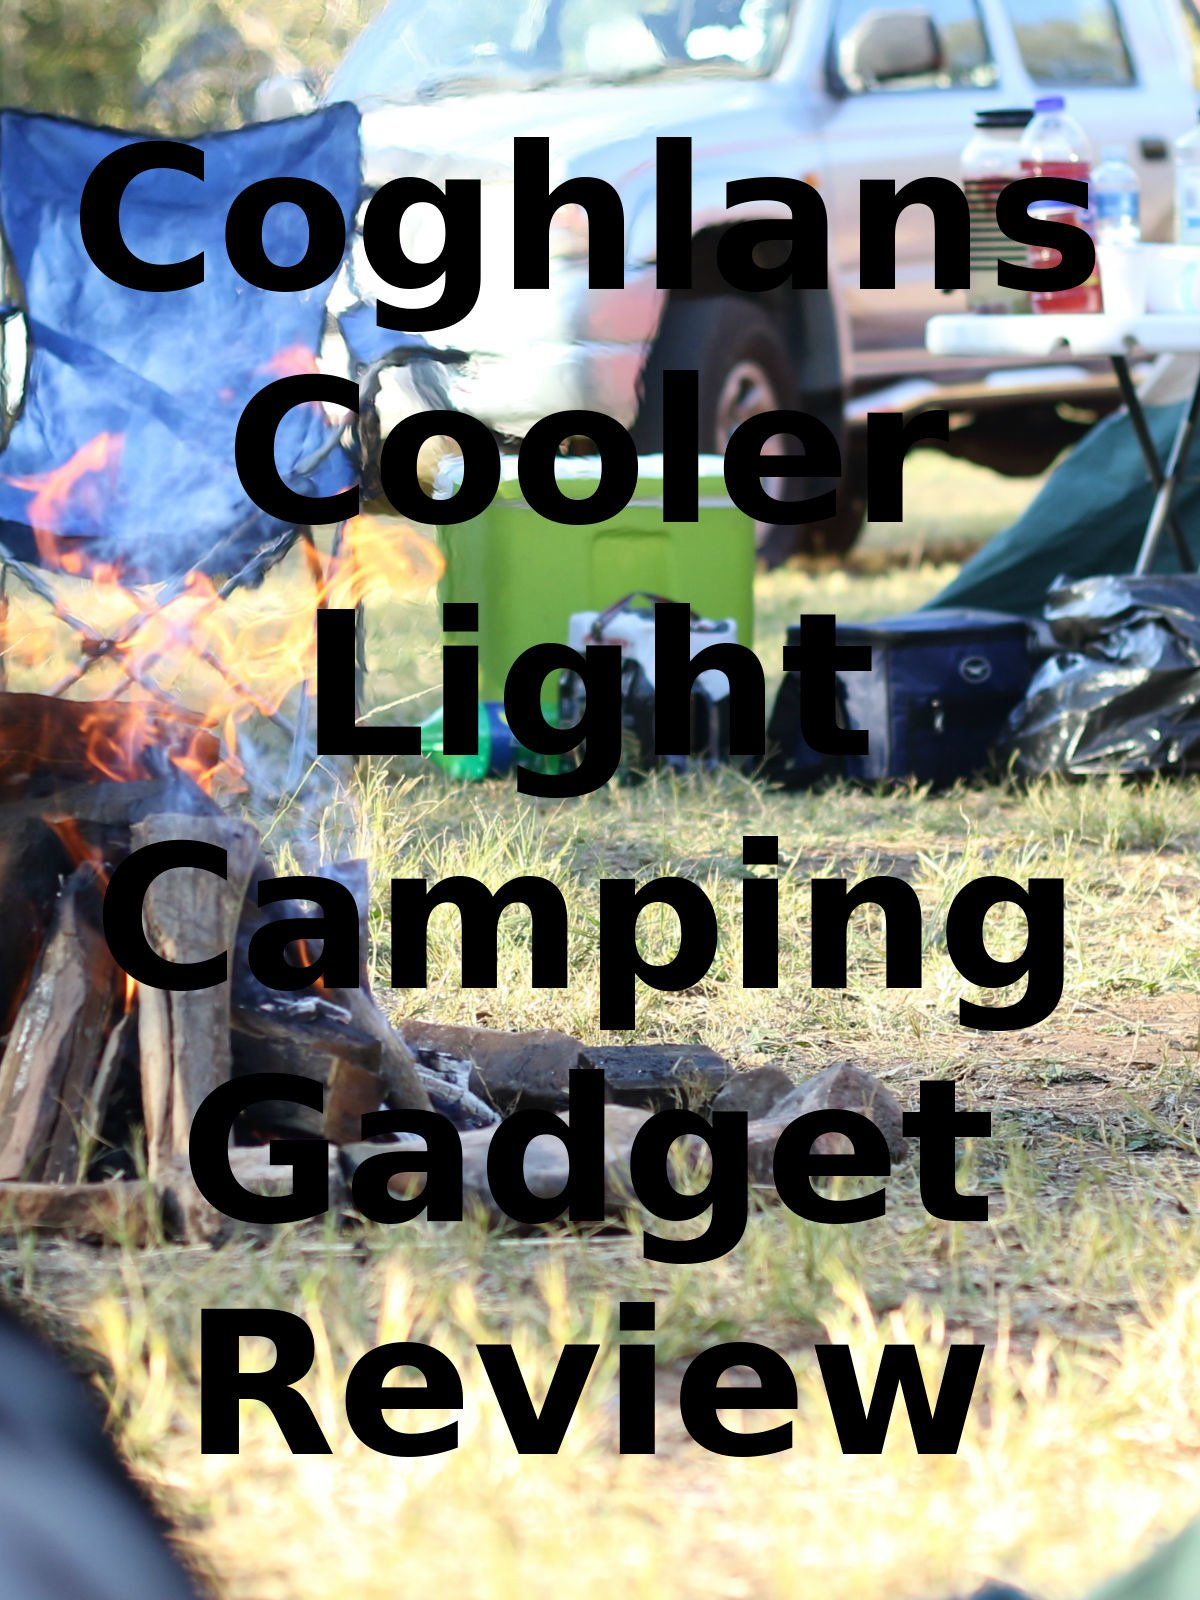 Review: Coghlans Cooler Light Camping Gadget Review